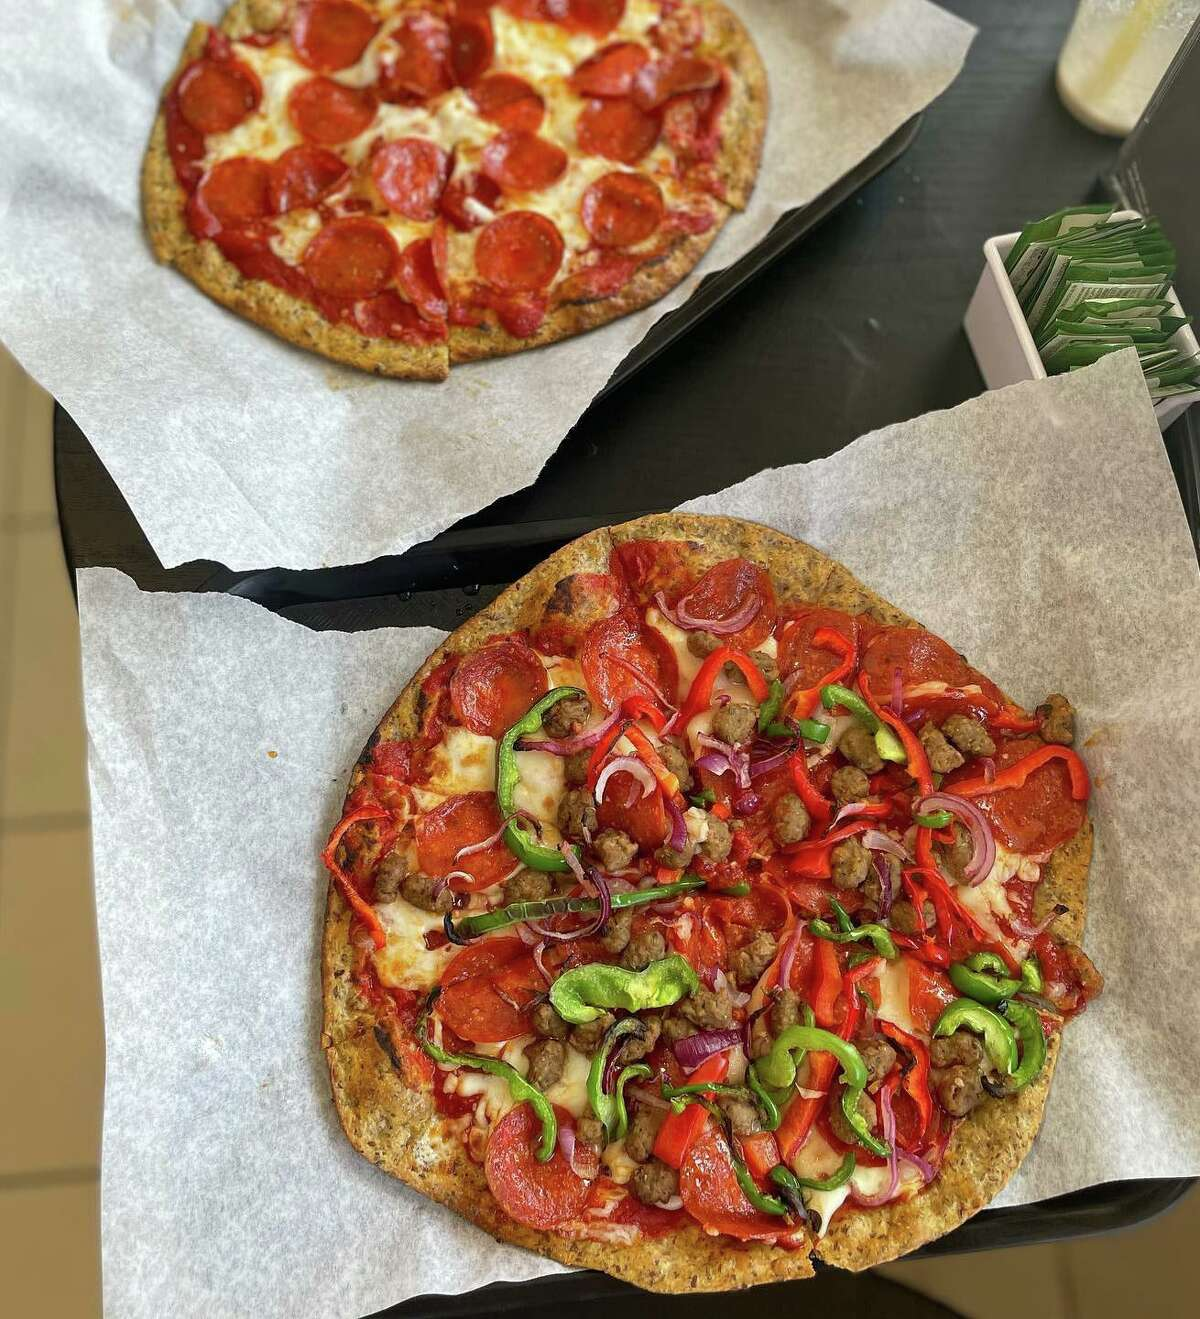 Low-carb pizzas from Shake and Bake bakery